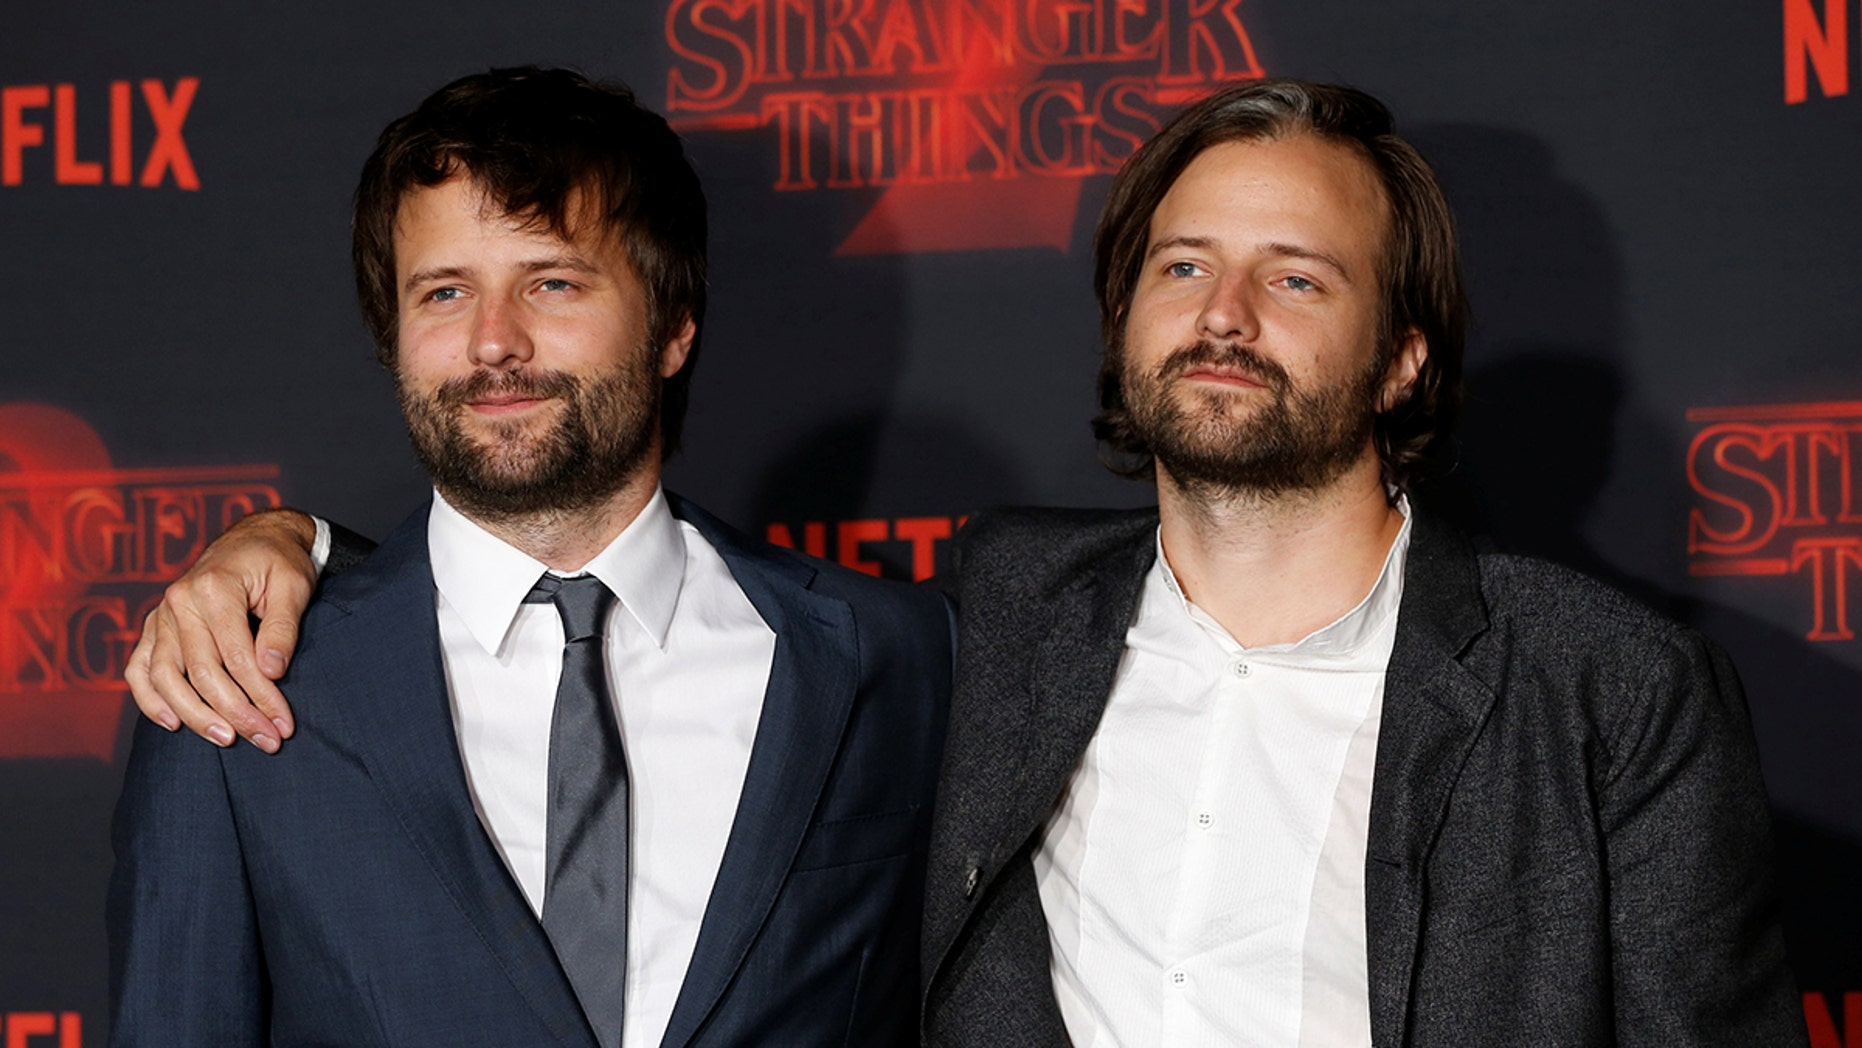 'Stranger Things' creators Ross and Matt Duffer responded to allegations they stole the show's concept